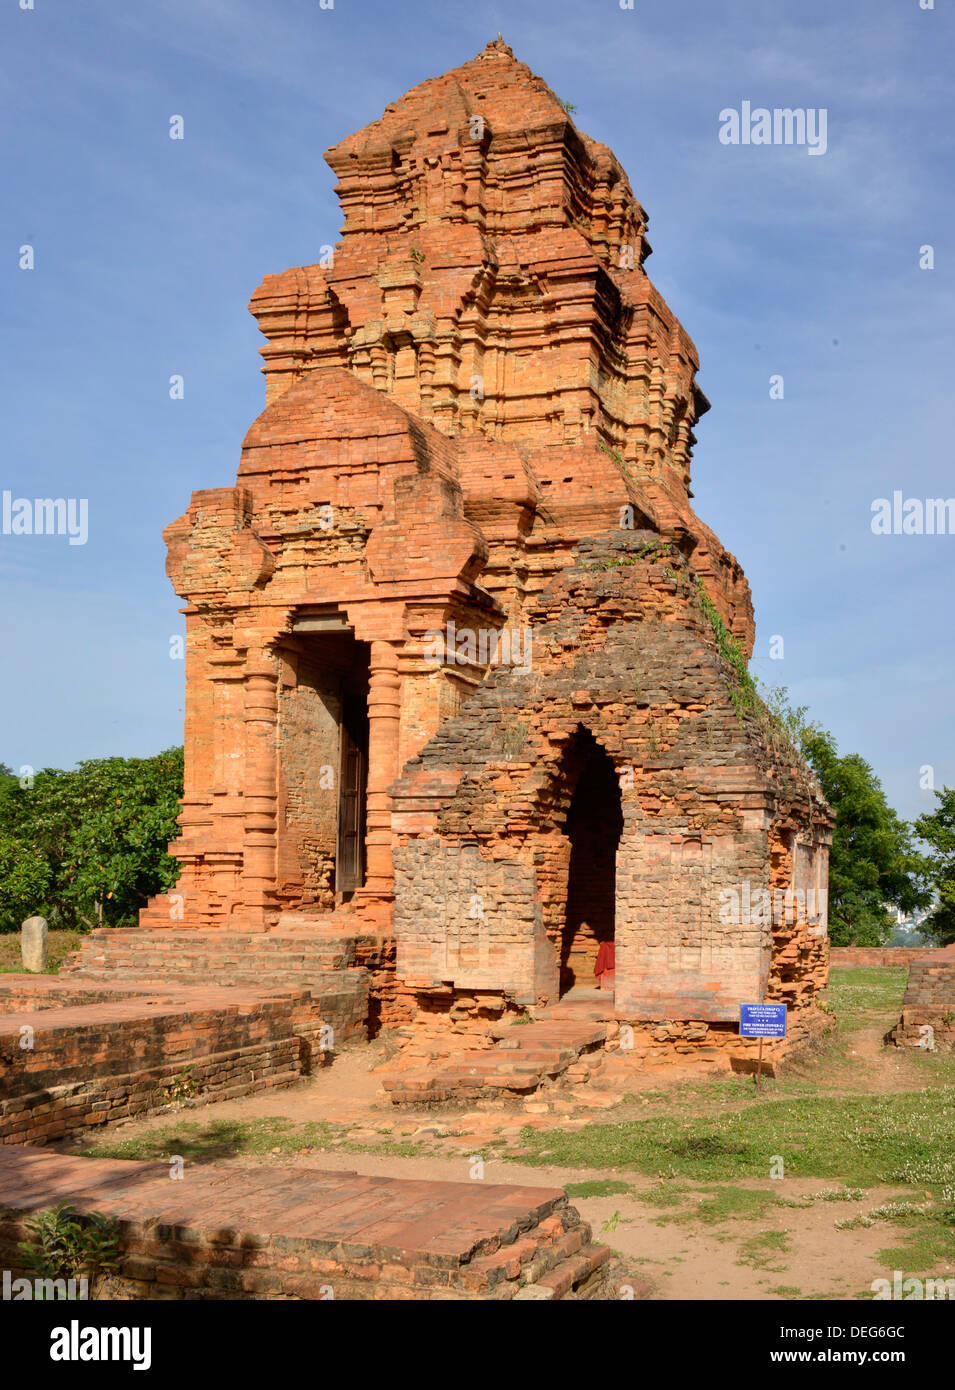 Temple Cham de Po Shanu, Phan Thiet, Vietnam, Indochine, Asie du Sud-Est, l'Asie Photo Stock